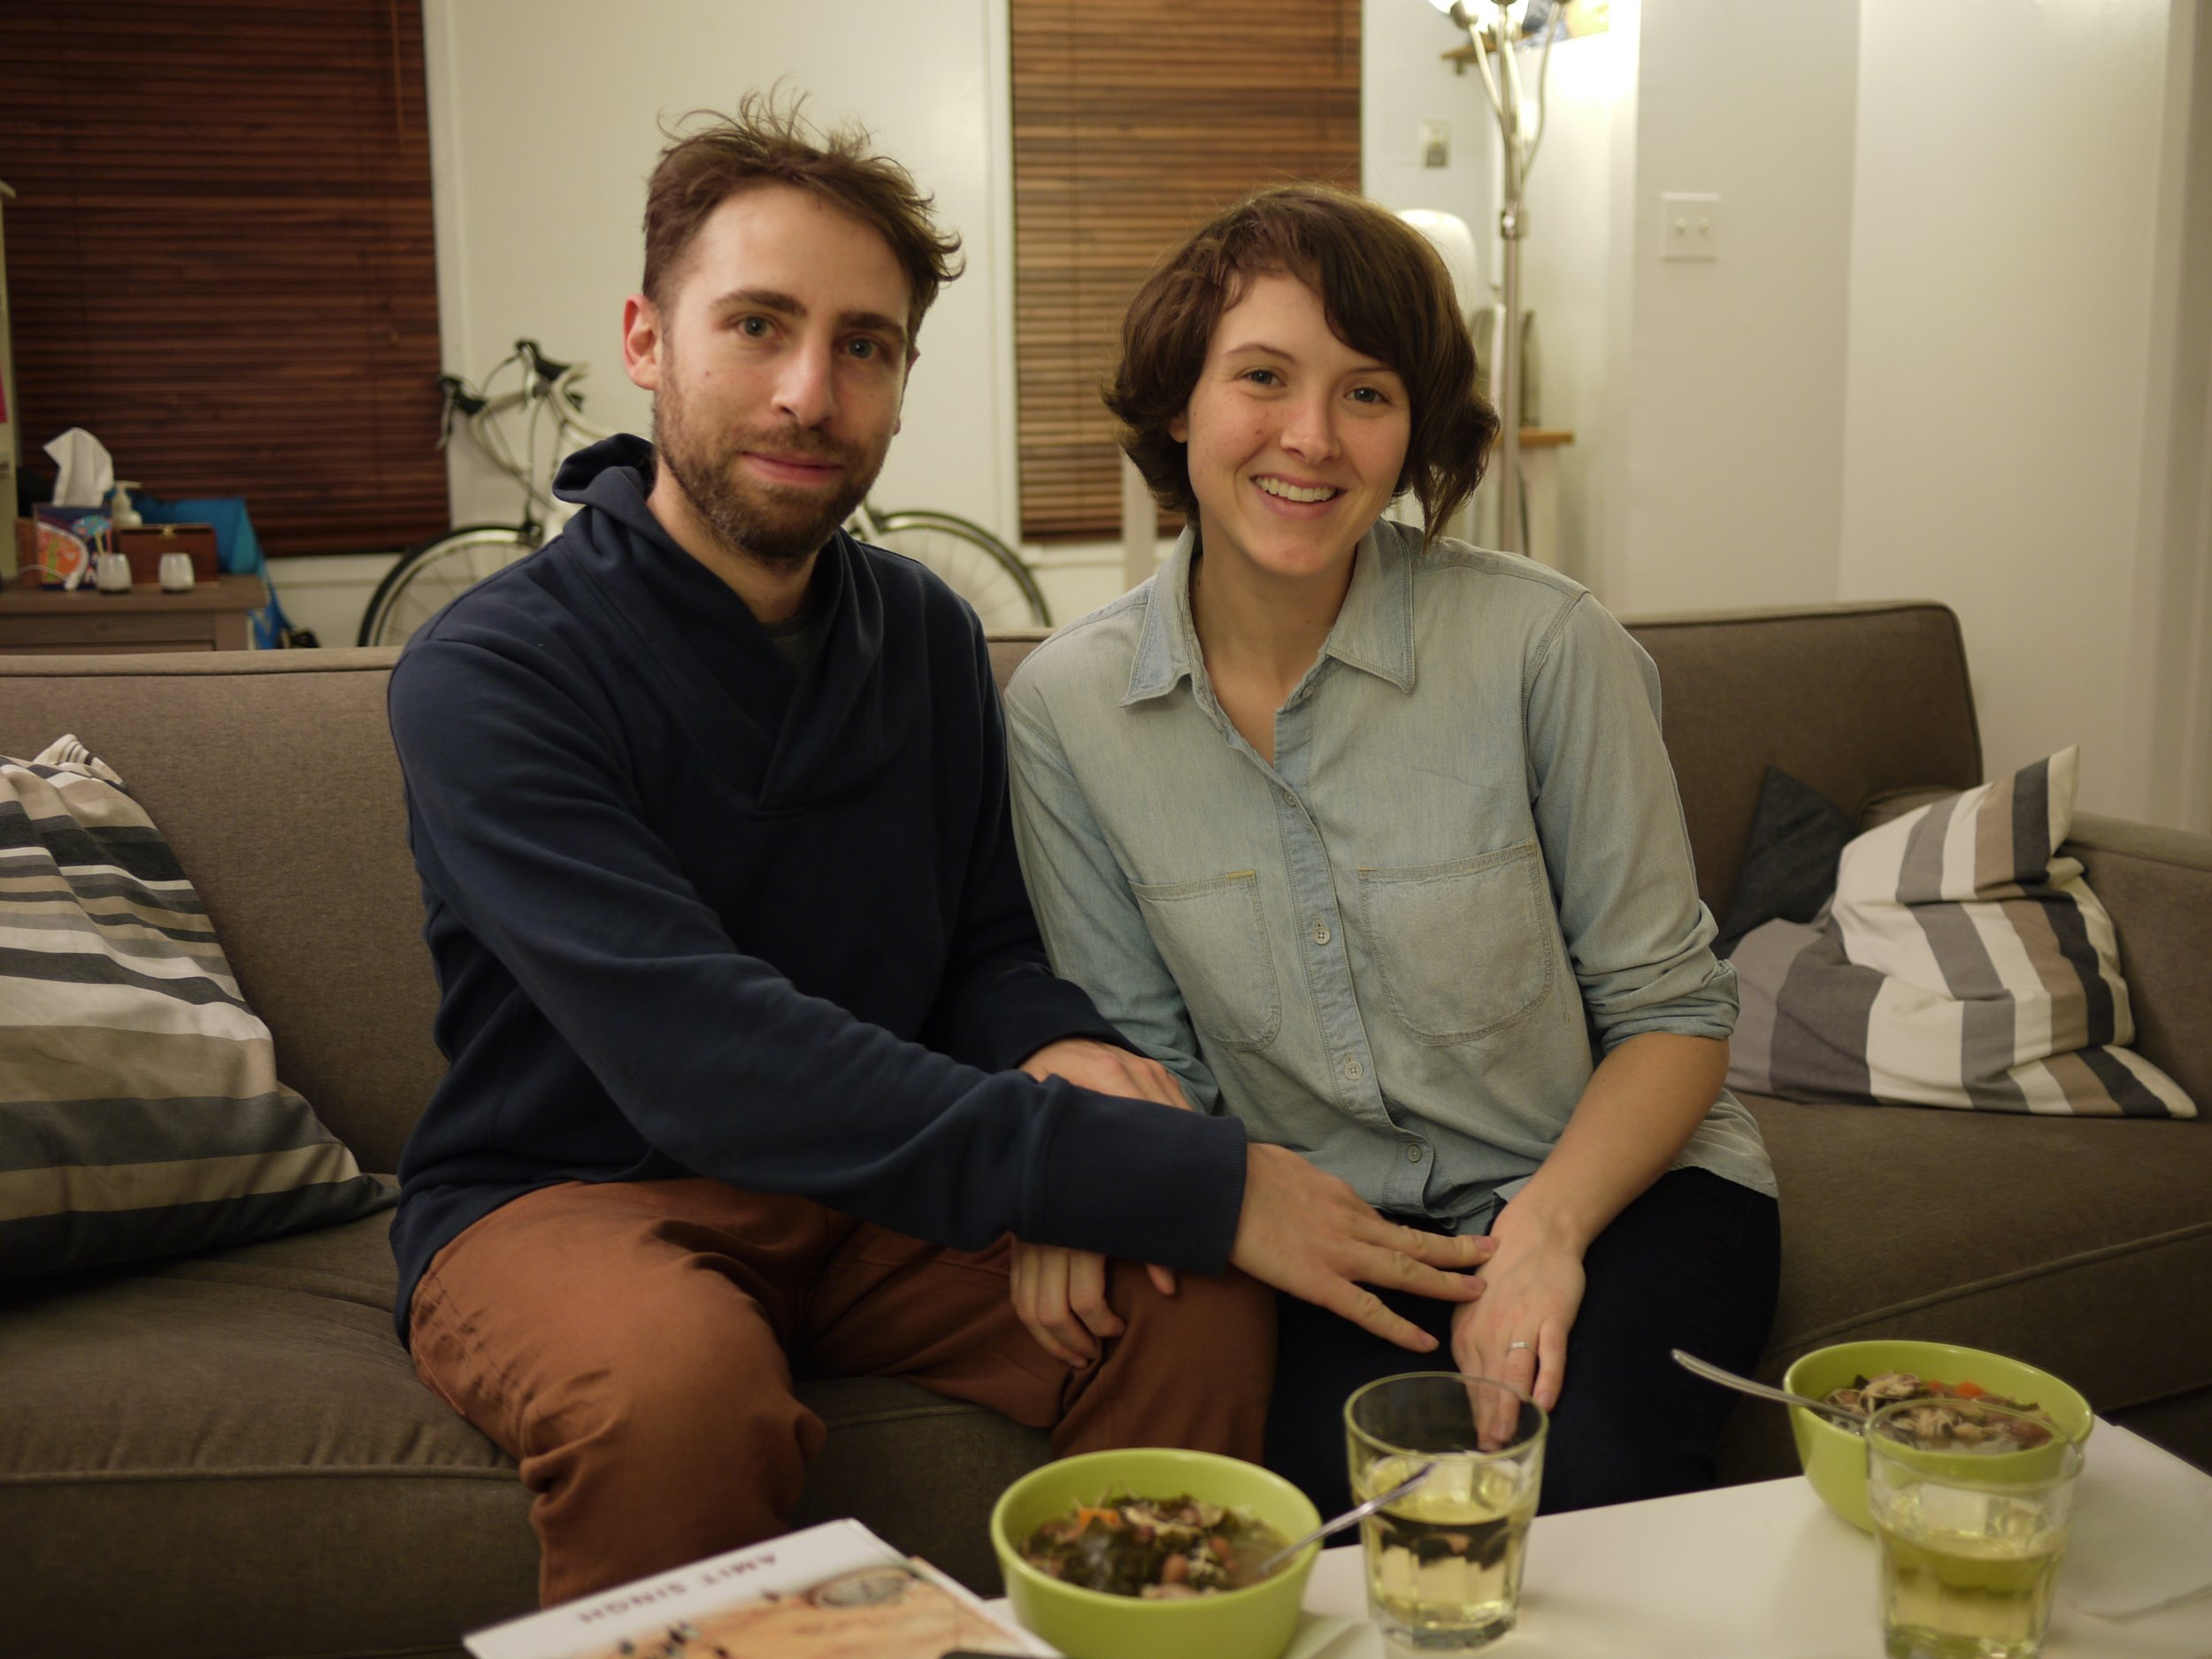 Max and Nicole at my place 2.jpg